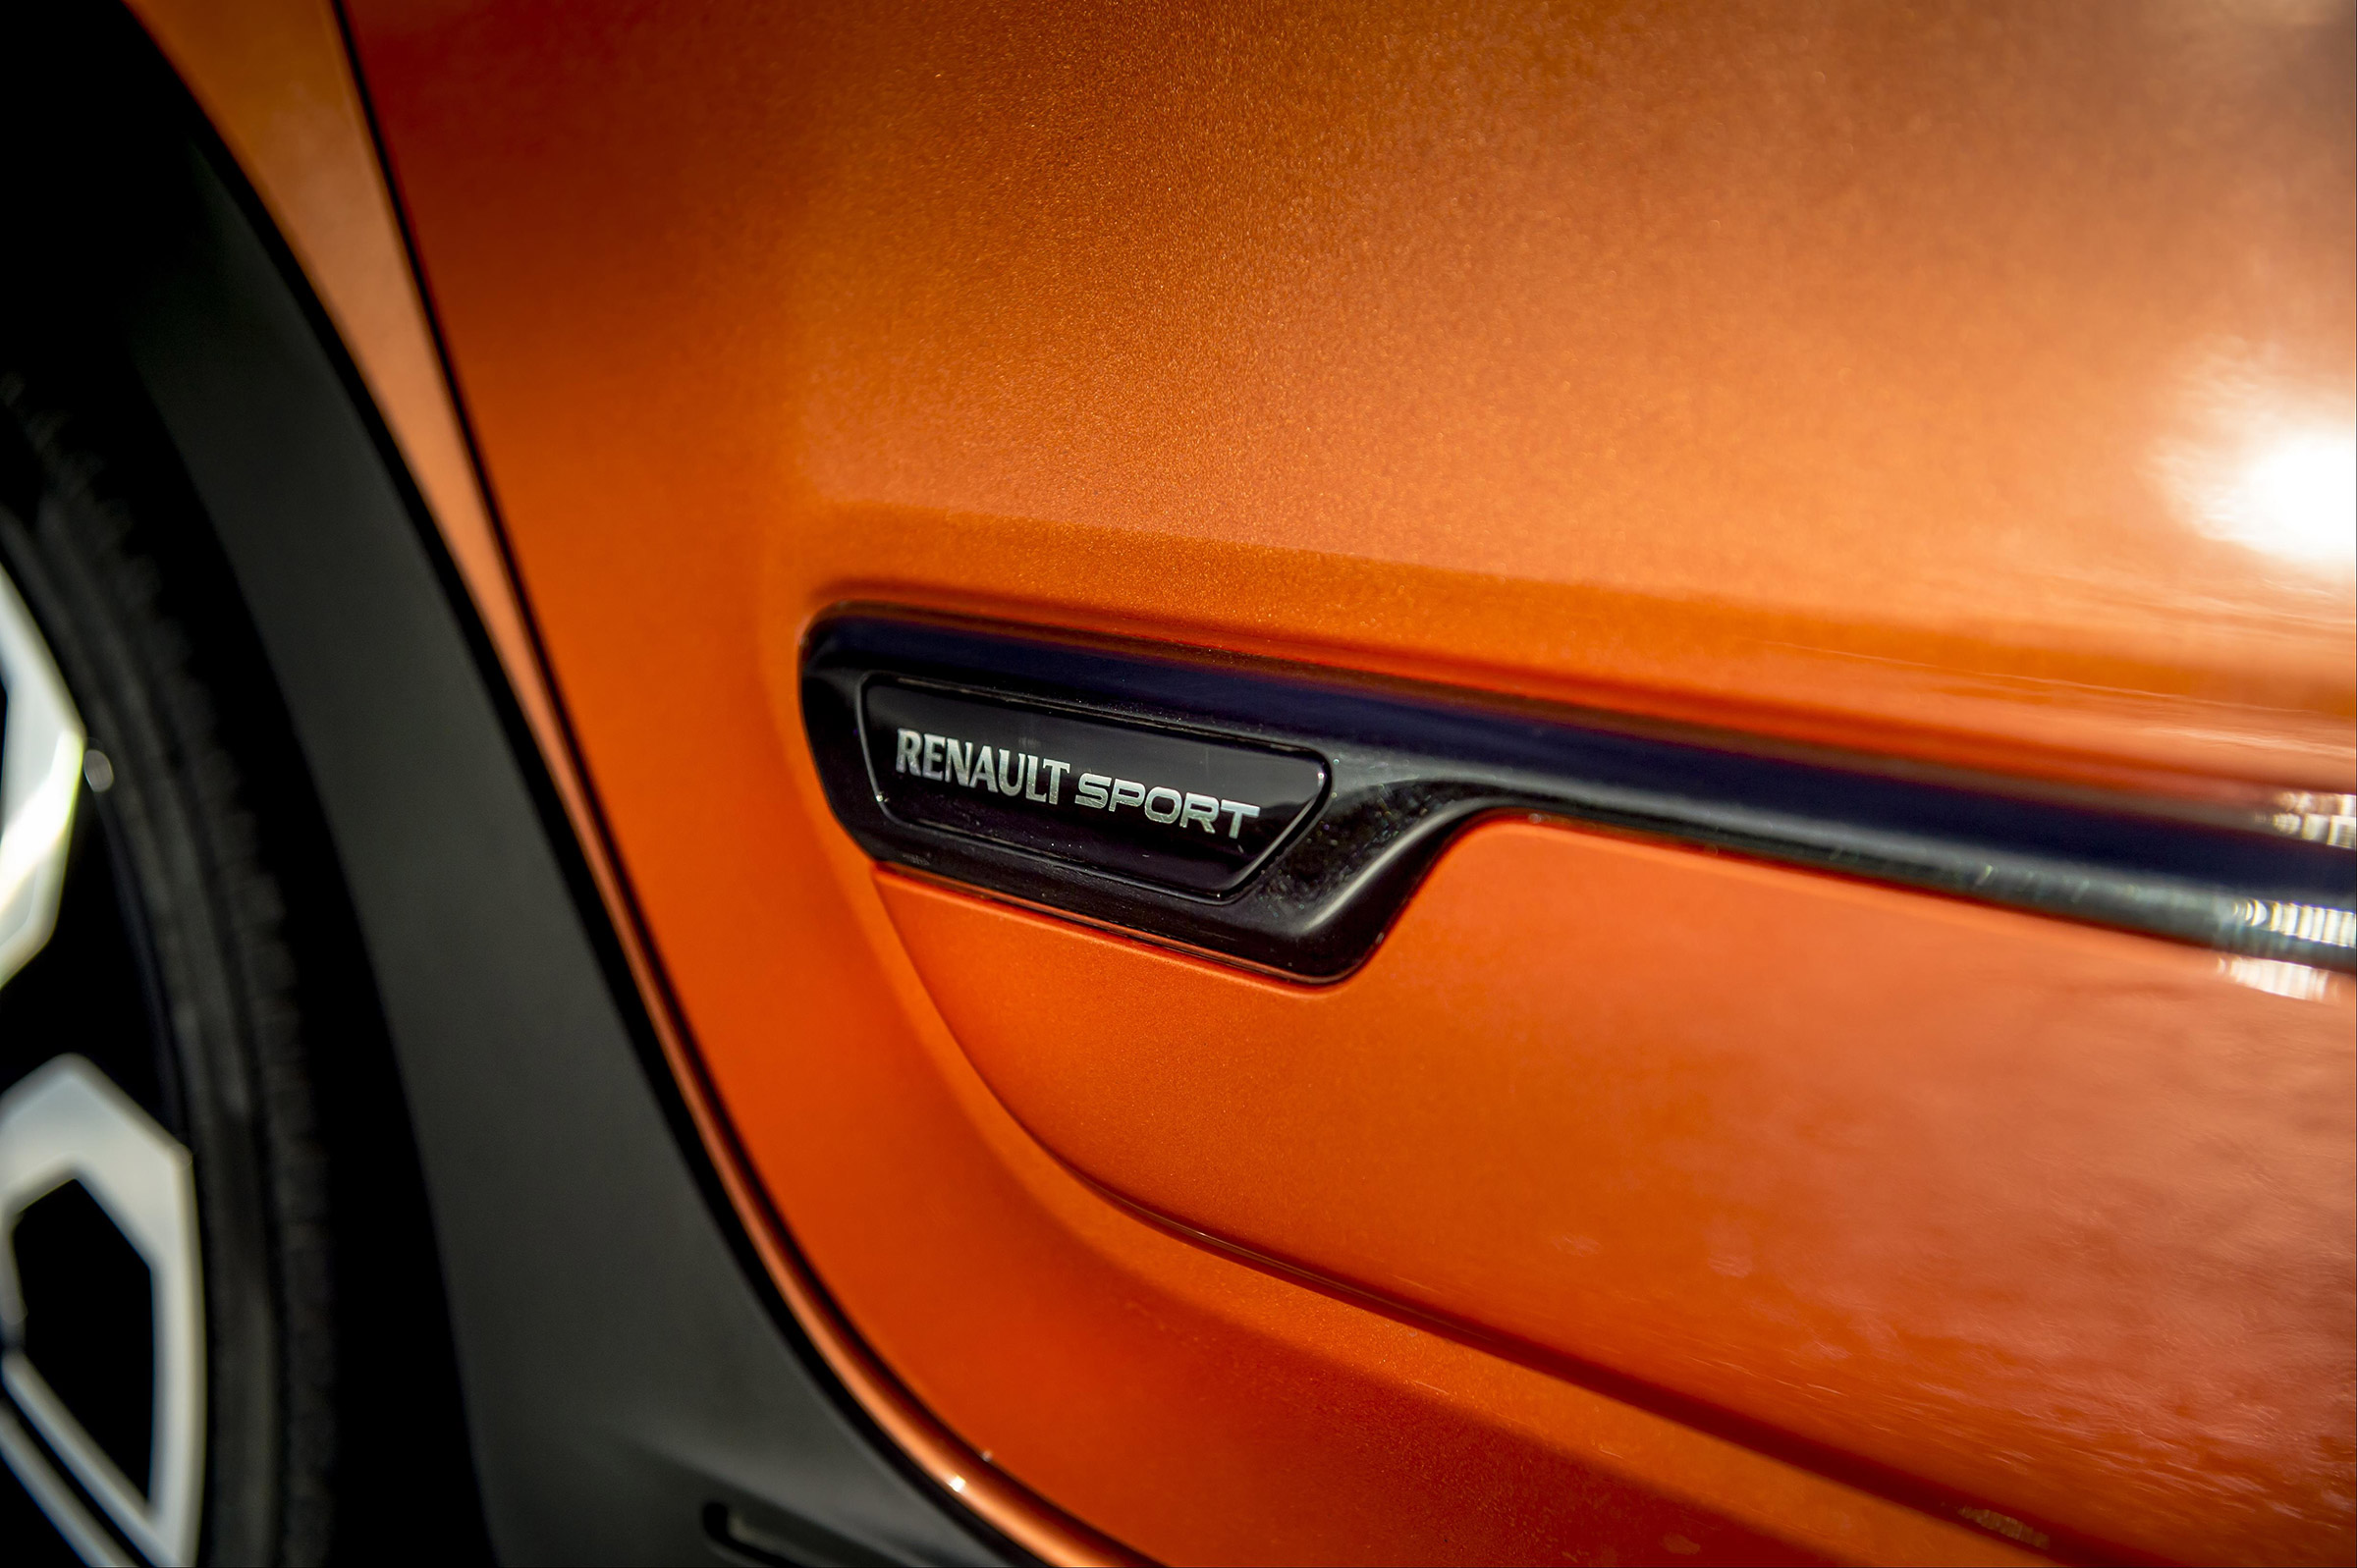 2017 Renault Twingo GT Exterior View Side Emblem (Photo 7 of 20)